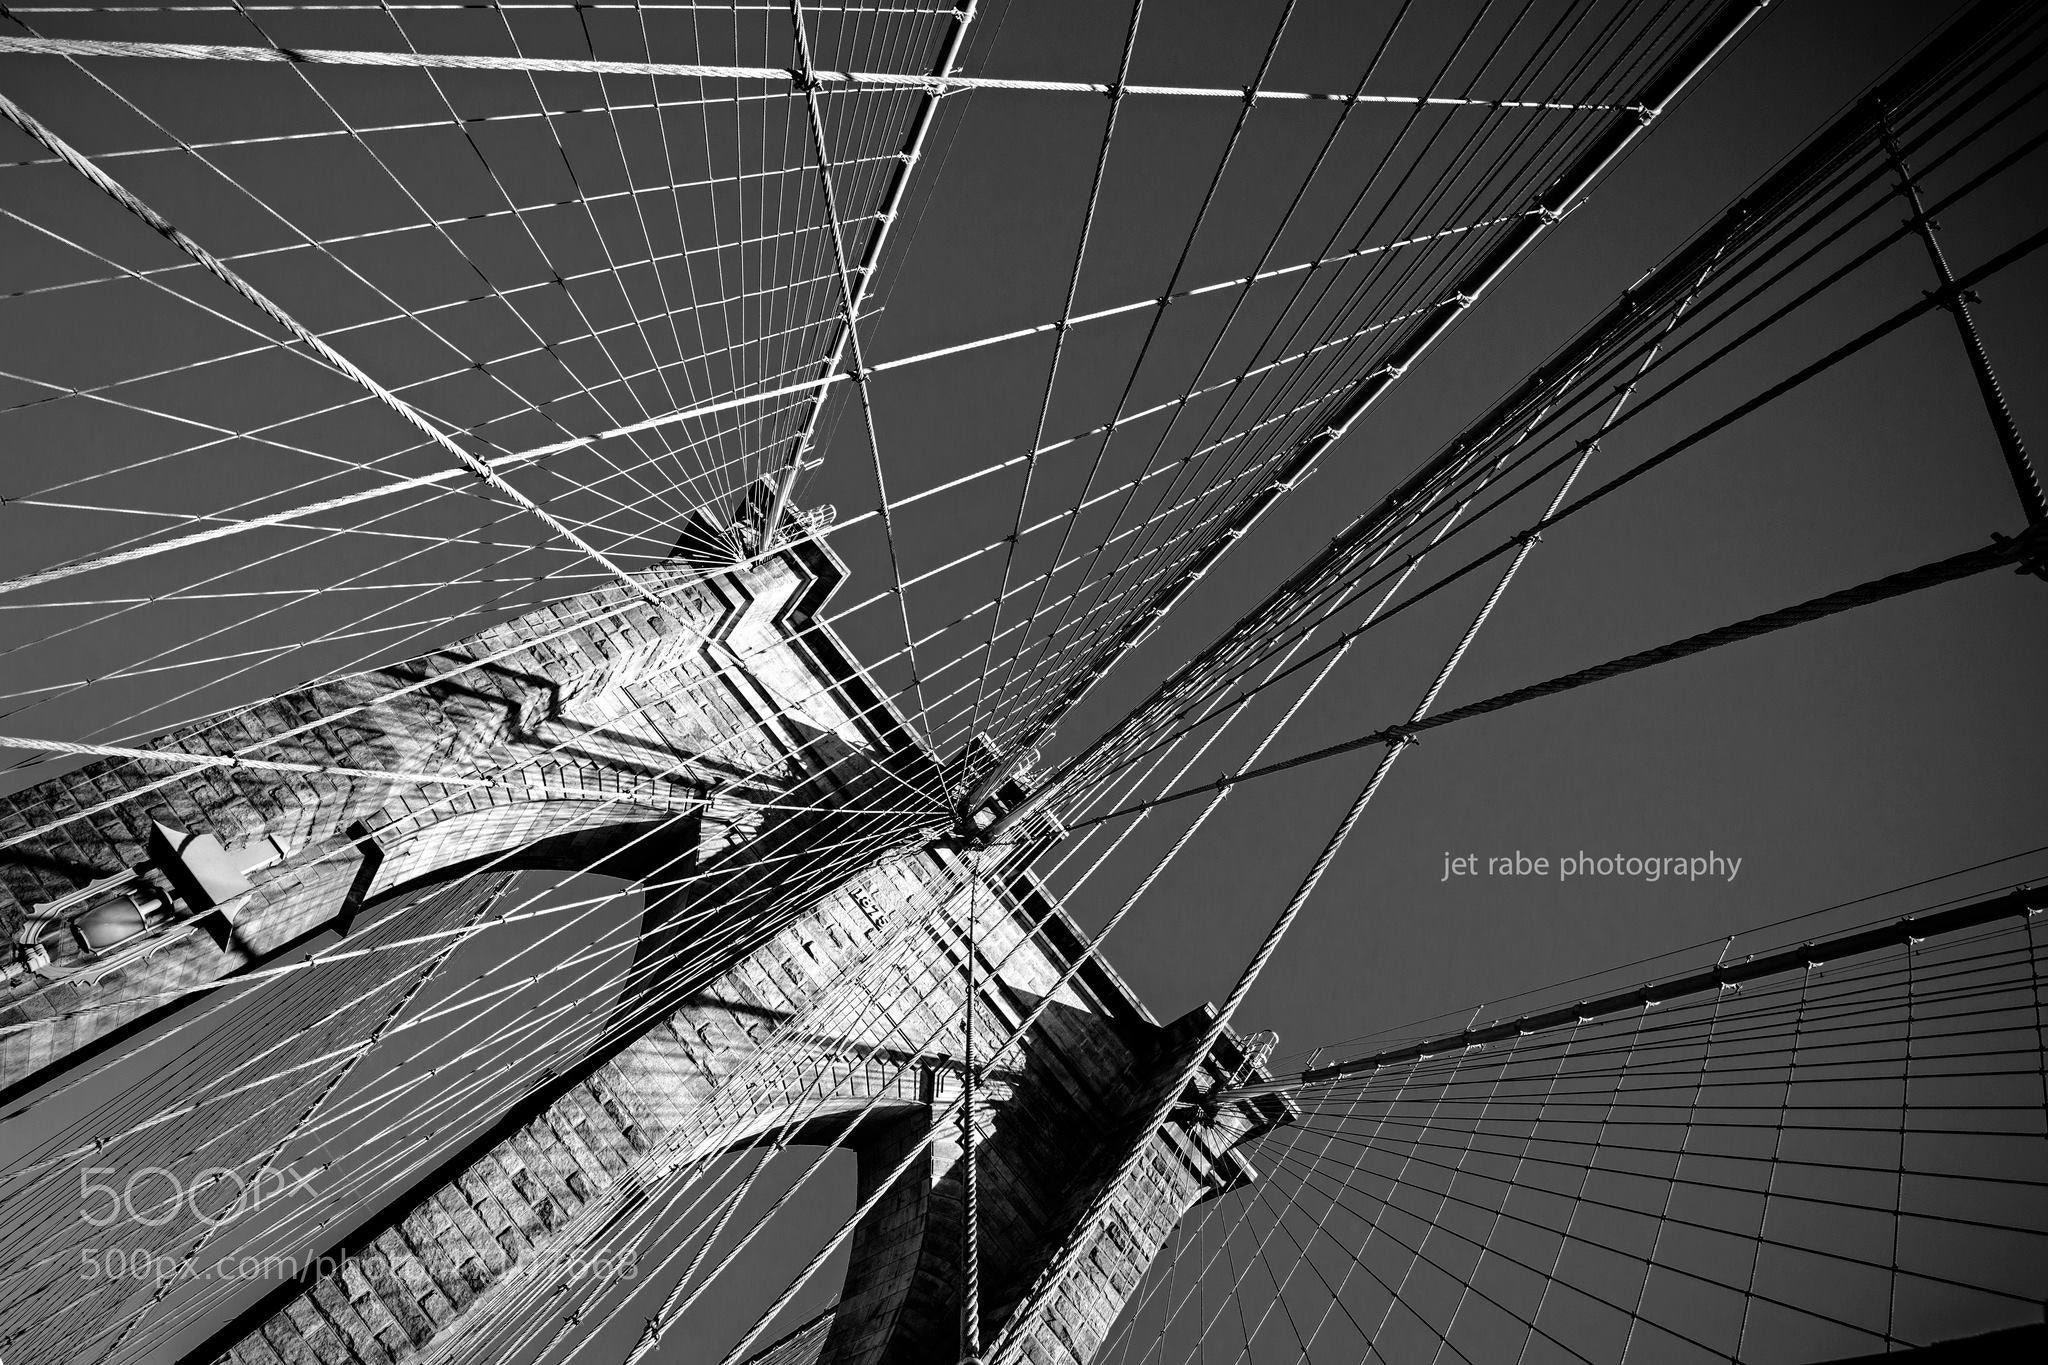 Photograph The Bridge by Jet Rabe on 500px